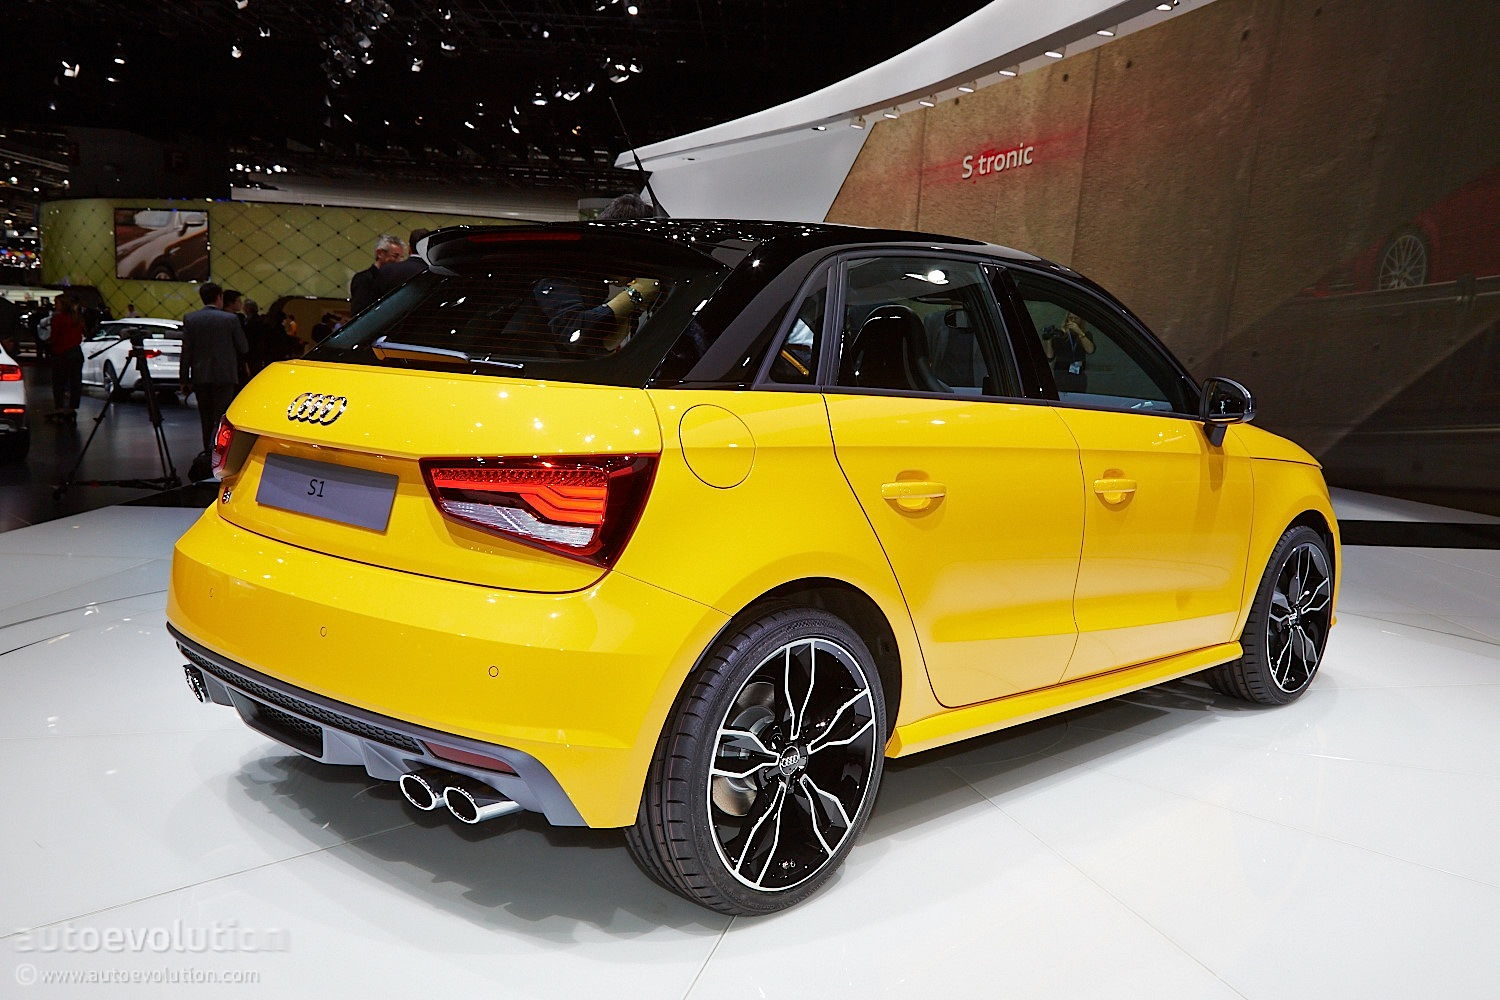 Audi S1 Wears Vegas Yellow for Swiss Debut [Live Photos ...